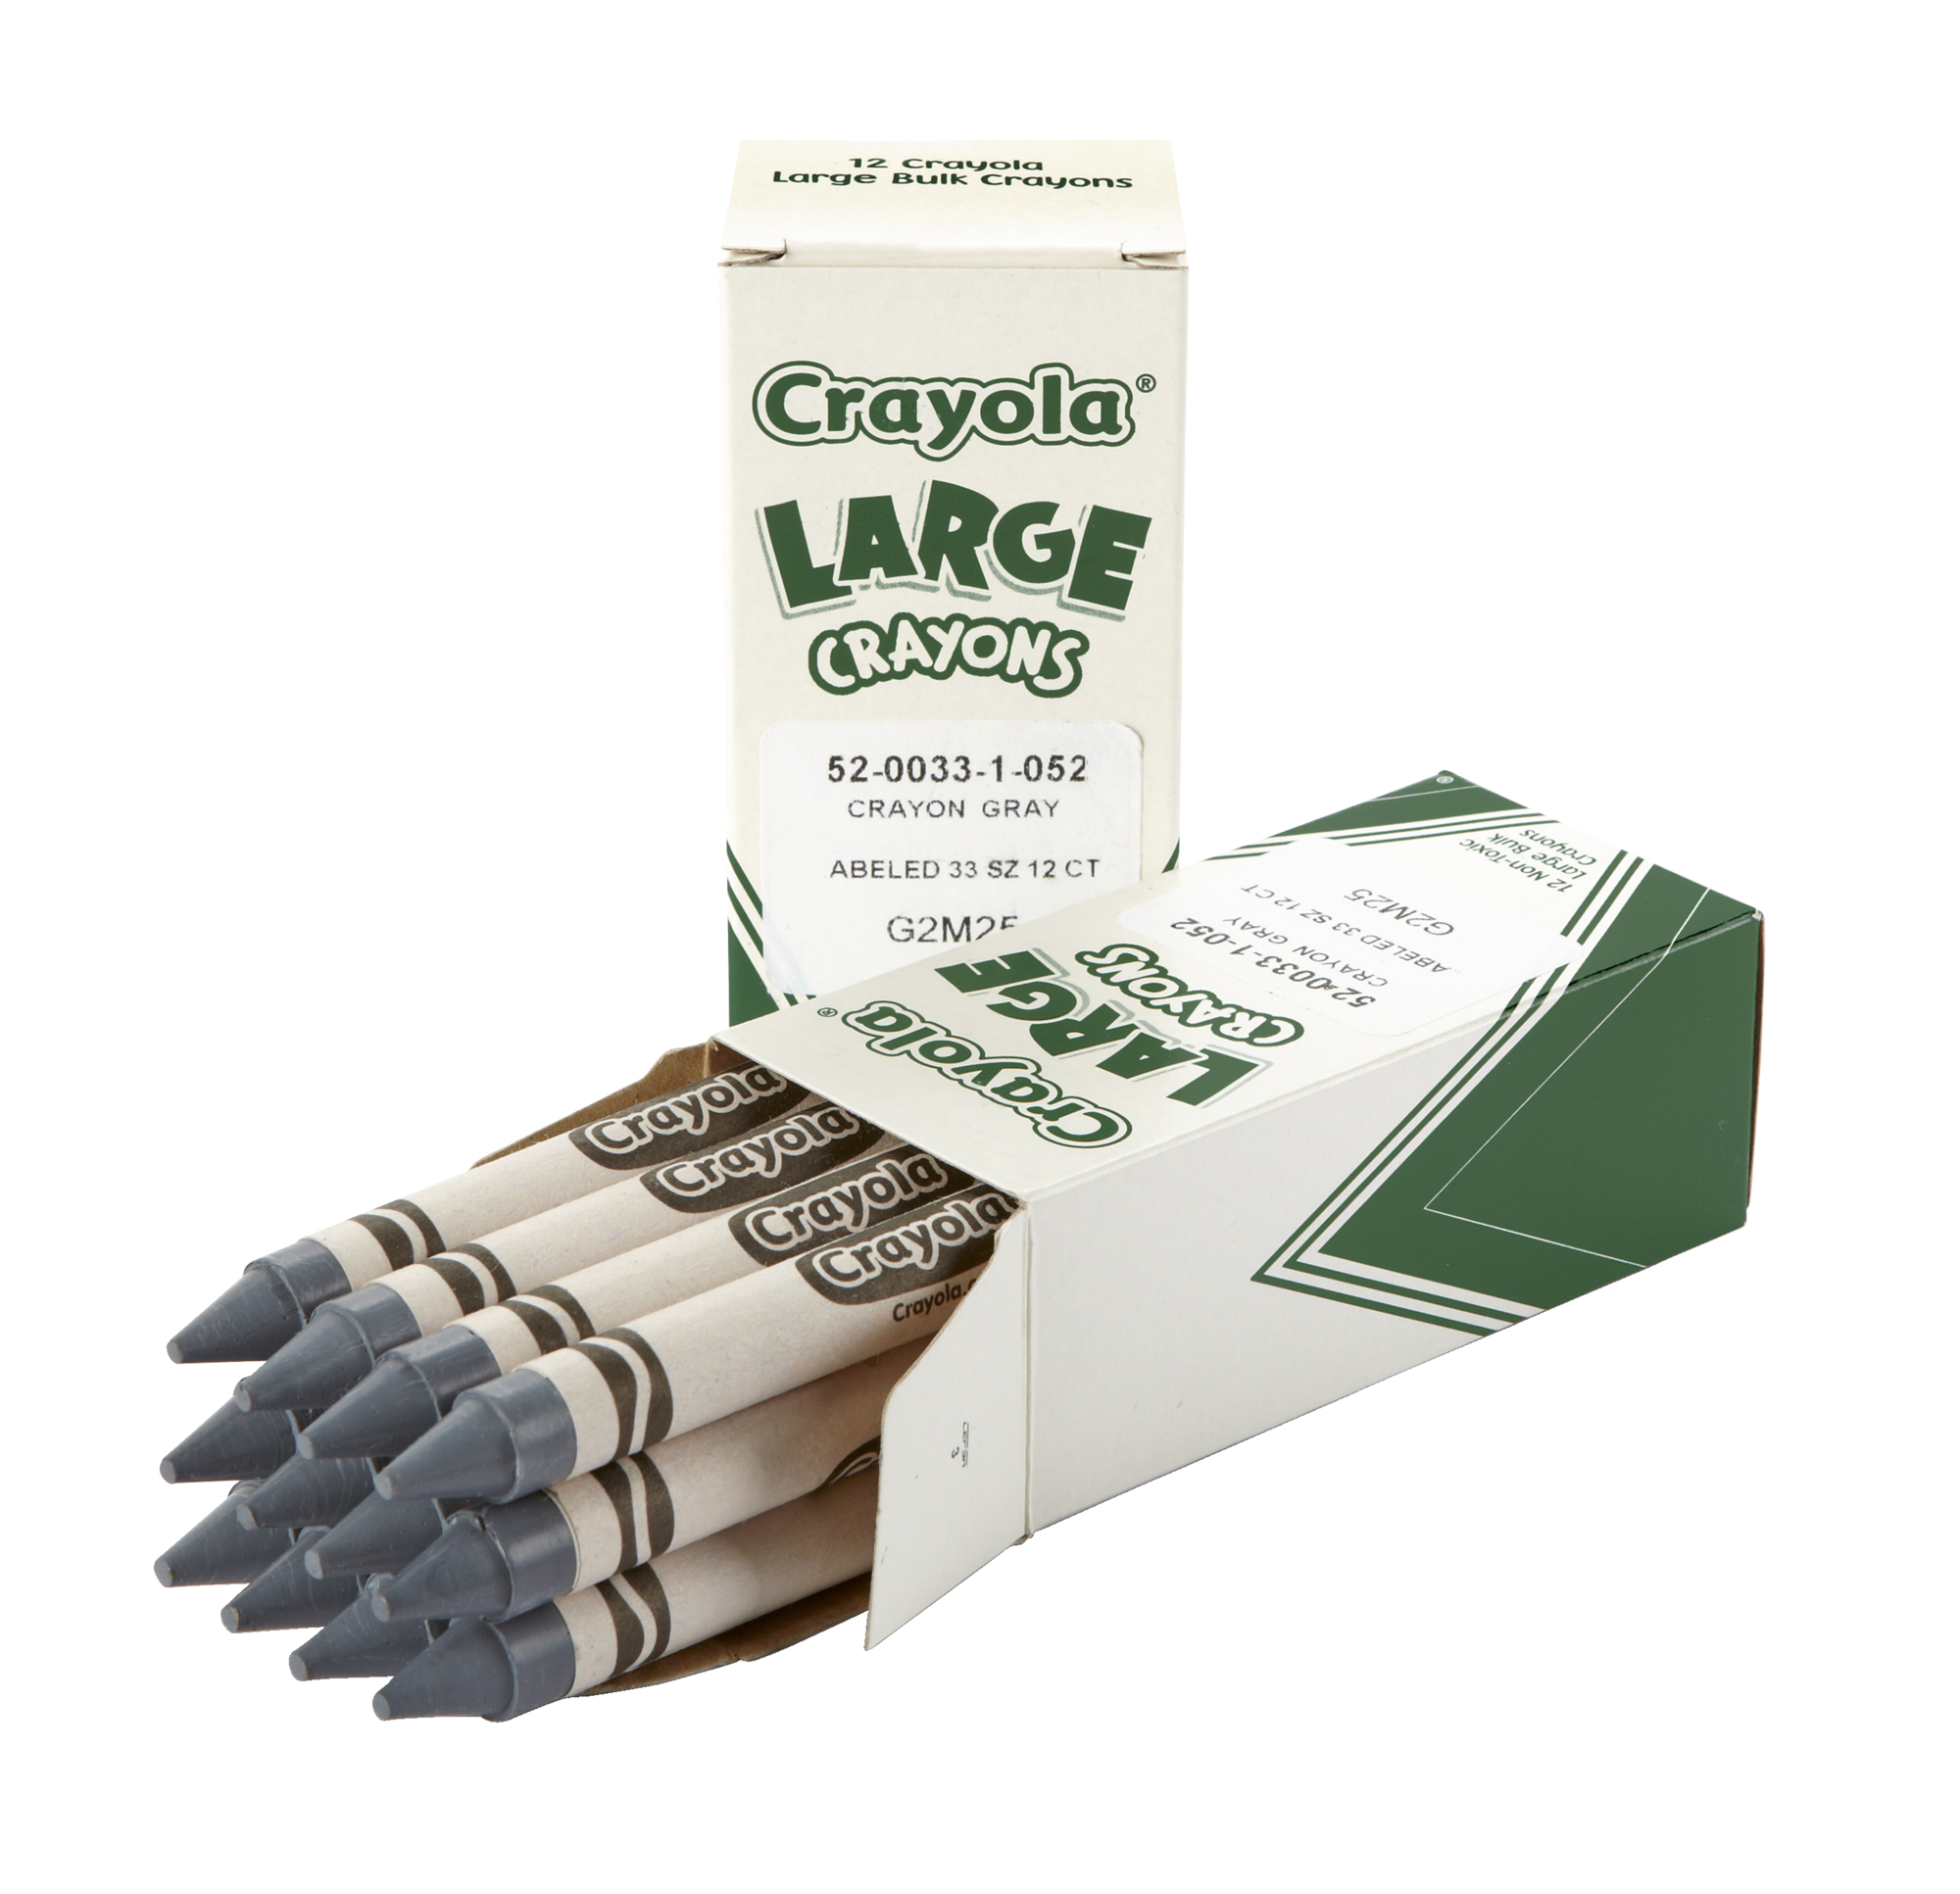 Crayola Large Non-Toxic Single Colors Crayon Refill, Gray, 2